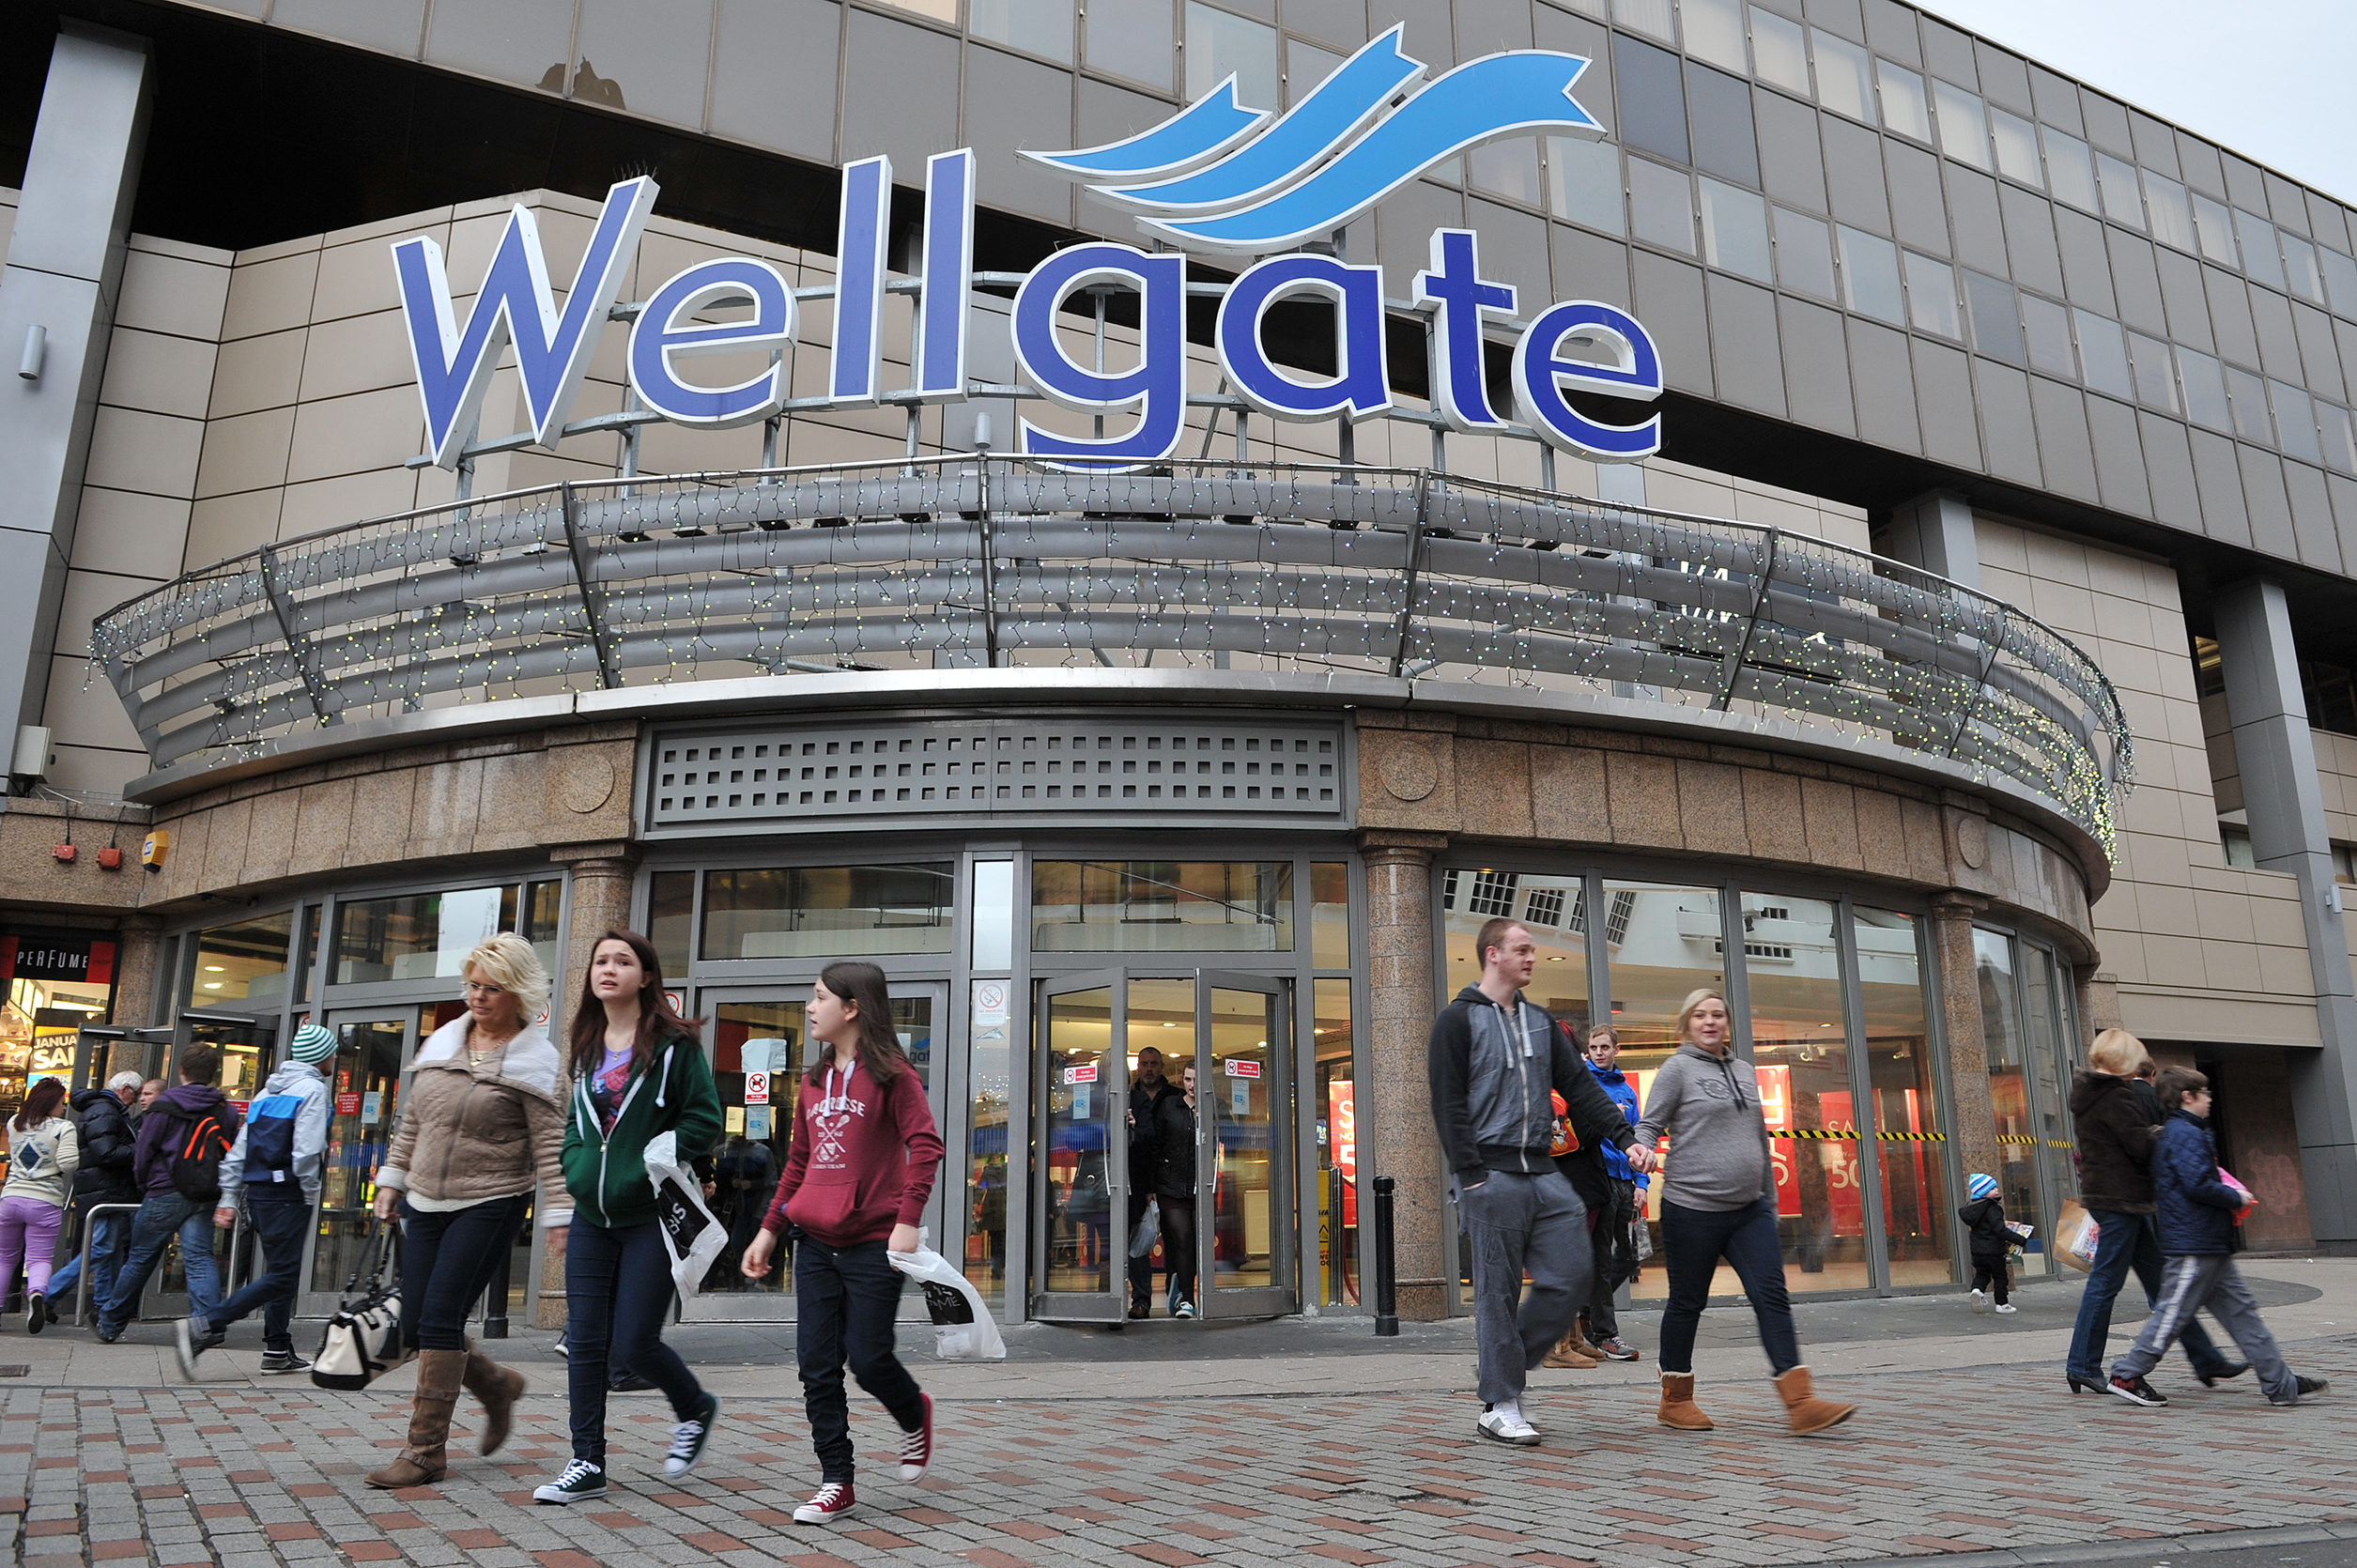 The incidents happened near the Wellgate Shopping Centre in Dundee.